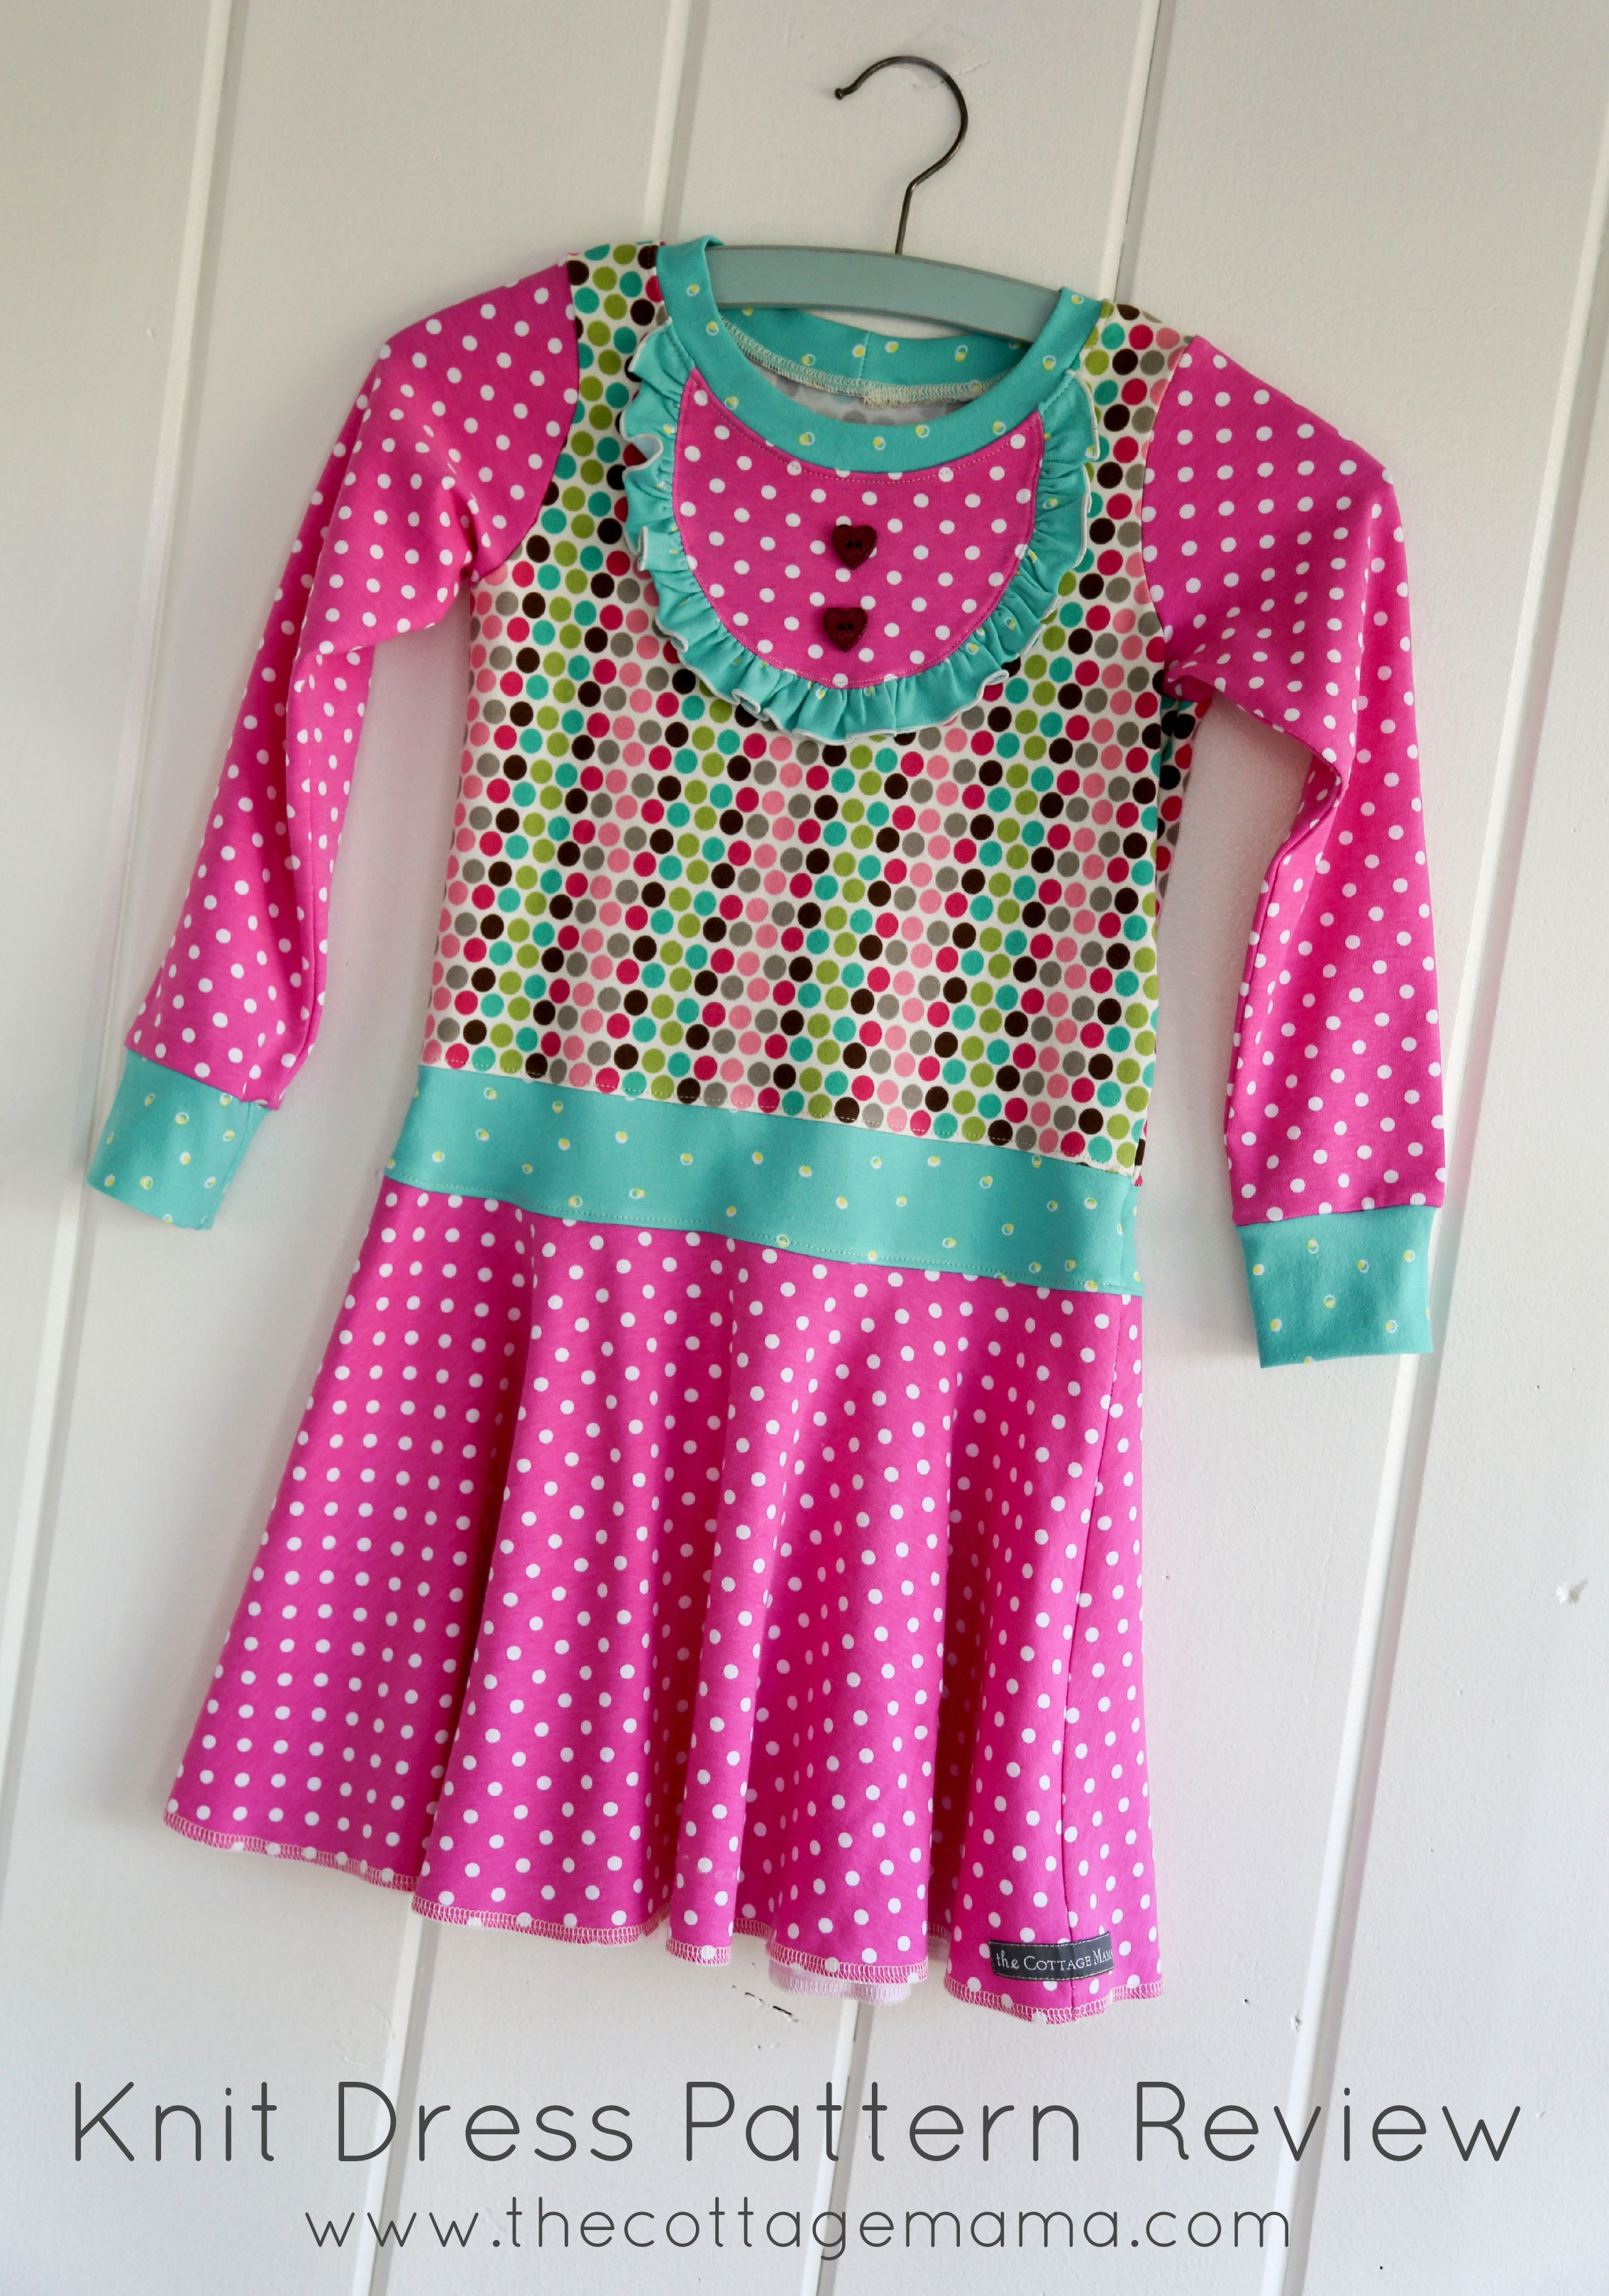 Knit Dress Pattern Review - The Cottage Mama